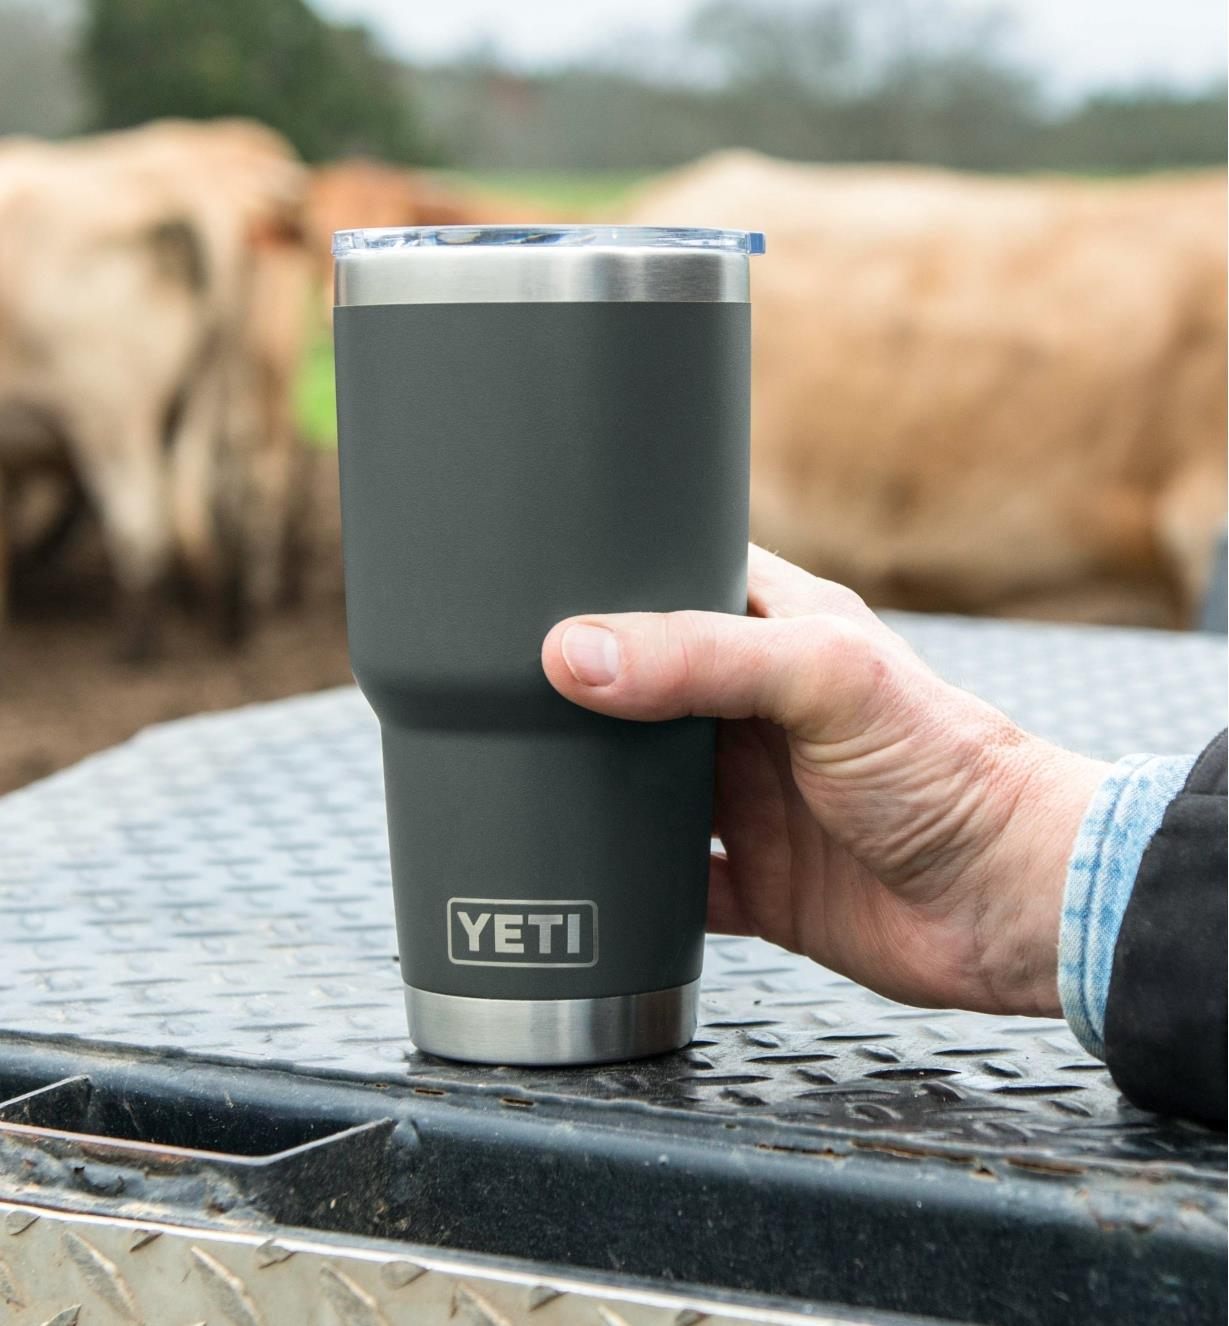 A man holds a 30 oz black Yeti Tumbler on an outdoor table